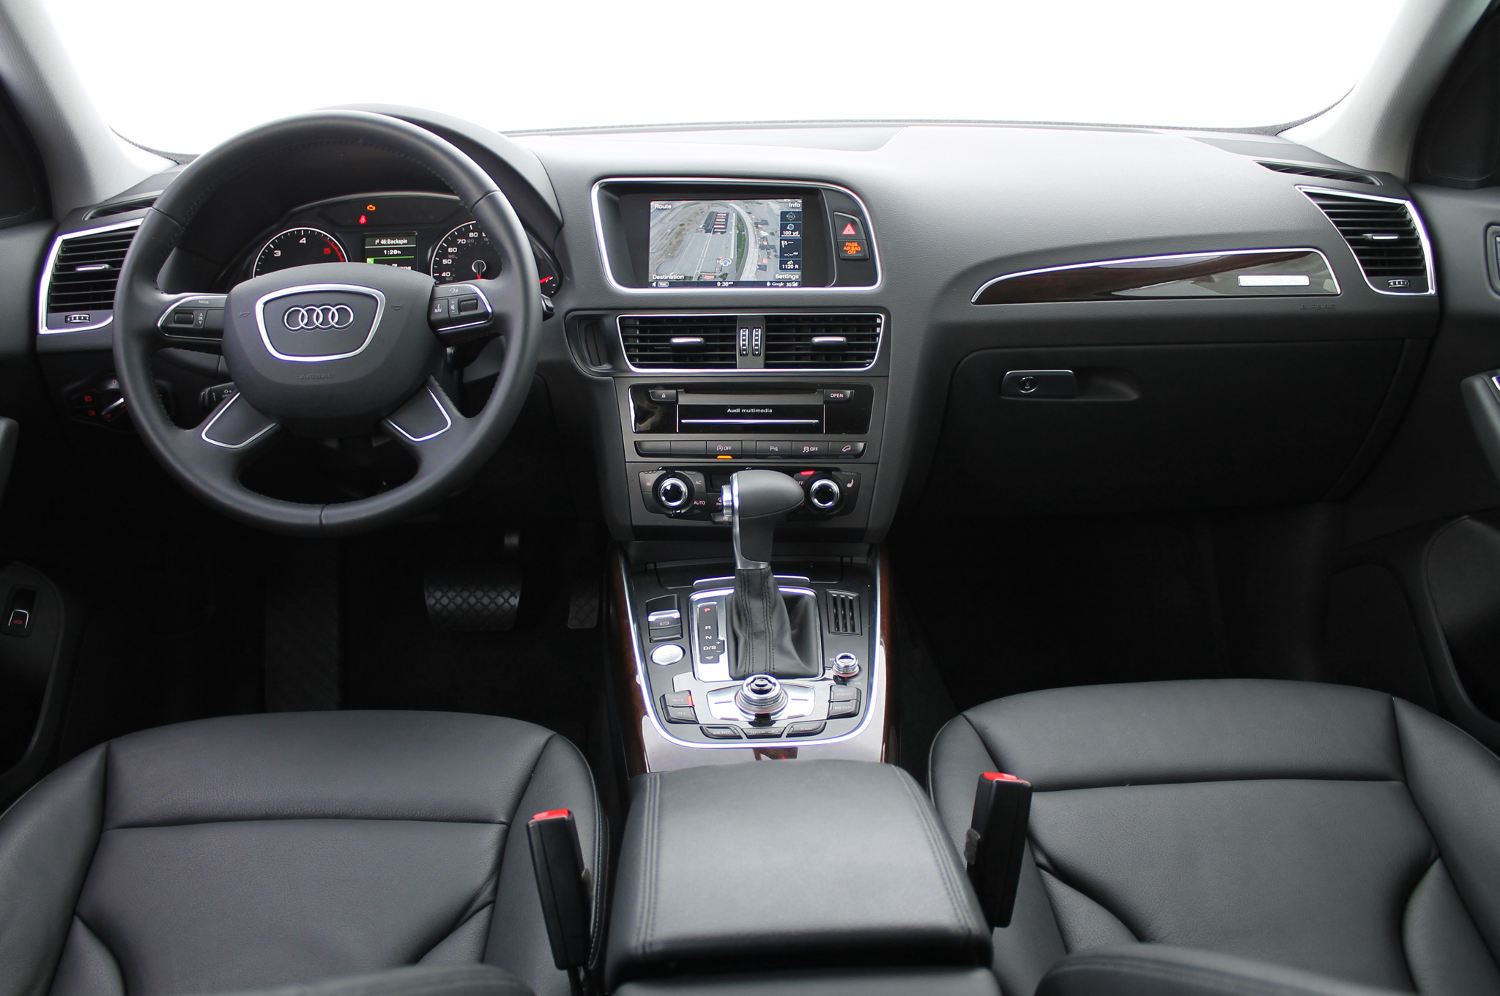 Comparison Audi Q5 Suv 2016 Vs Audi Q7 Suv 2015